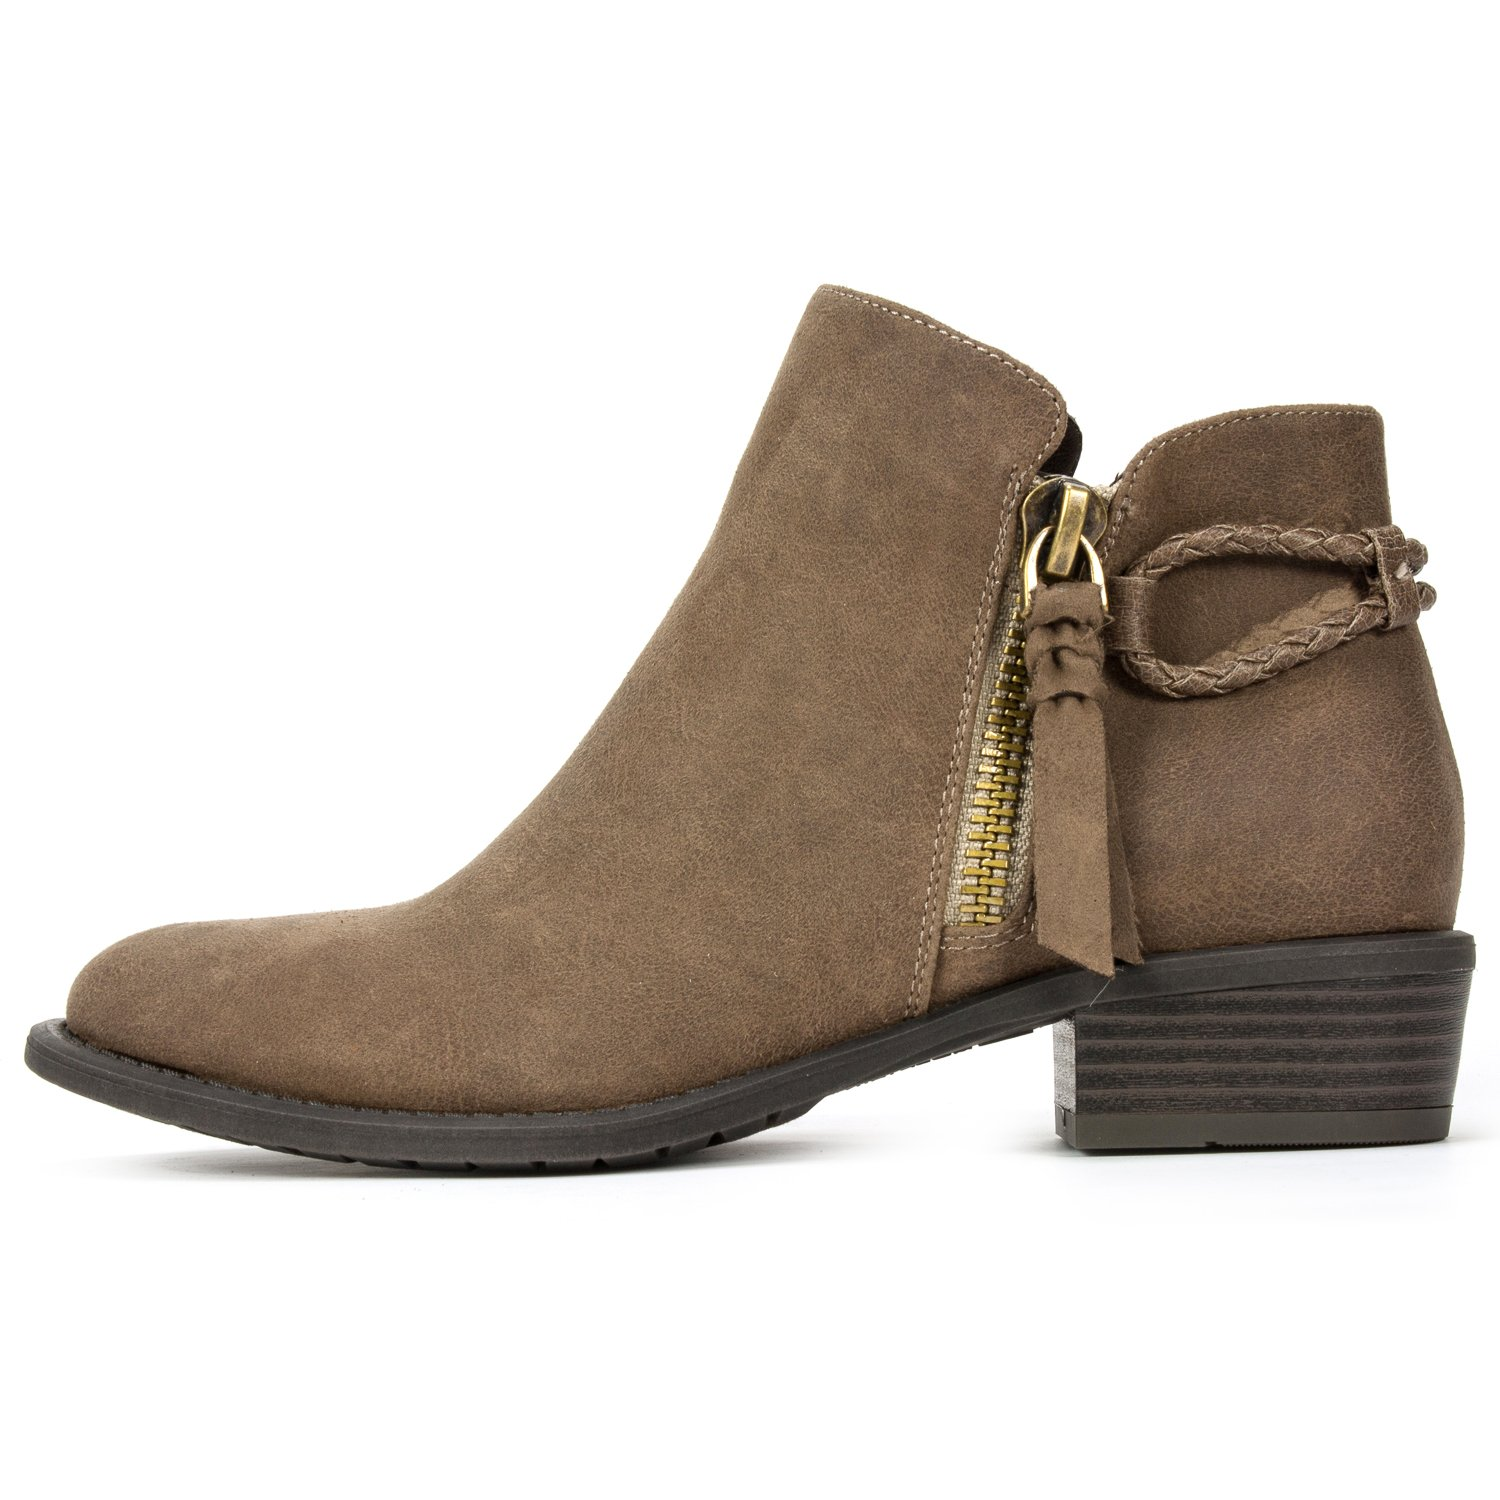 WHITE MOUNTAIN Women's Dart Ankle Boot B0761SX7VN 8 B(M) US|Dark Taupe